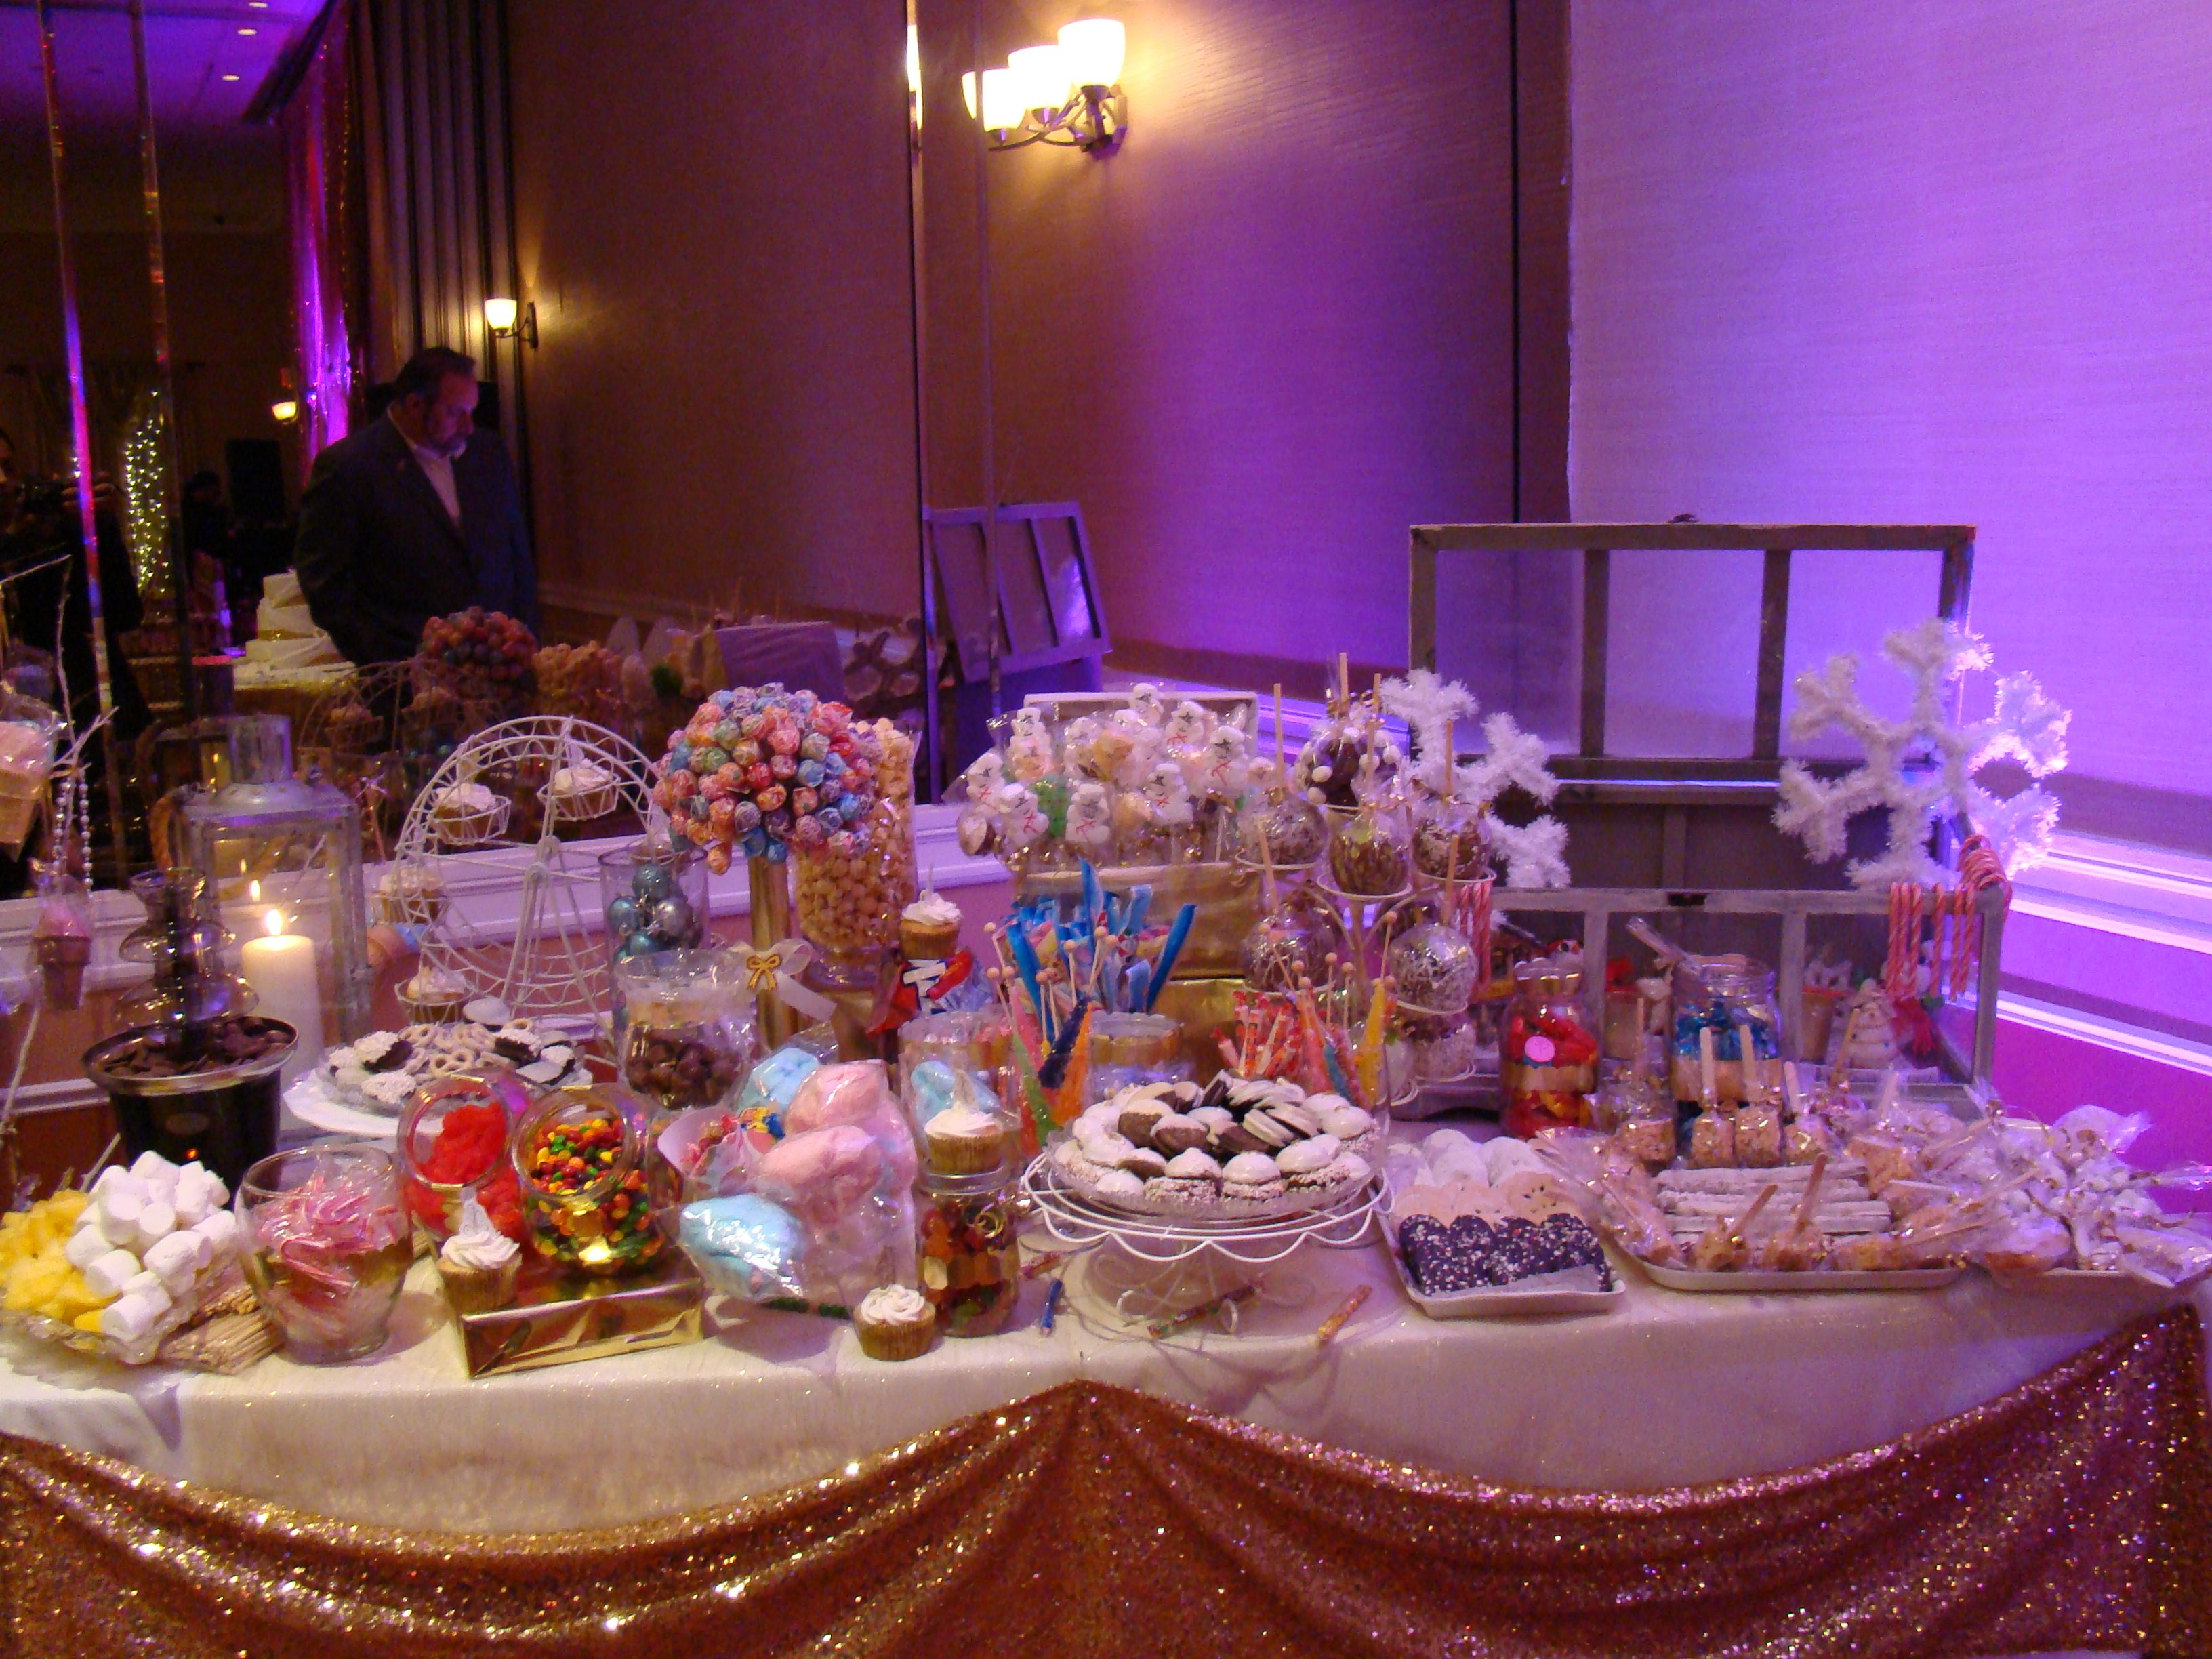 Yummy Treats, Choco;ate apples,Marshmallow 'Treats, Cotton candy tree,Lollpop treats,Oreo Chocolate Cookie treats.and much more...